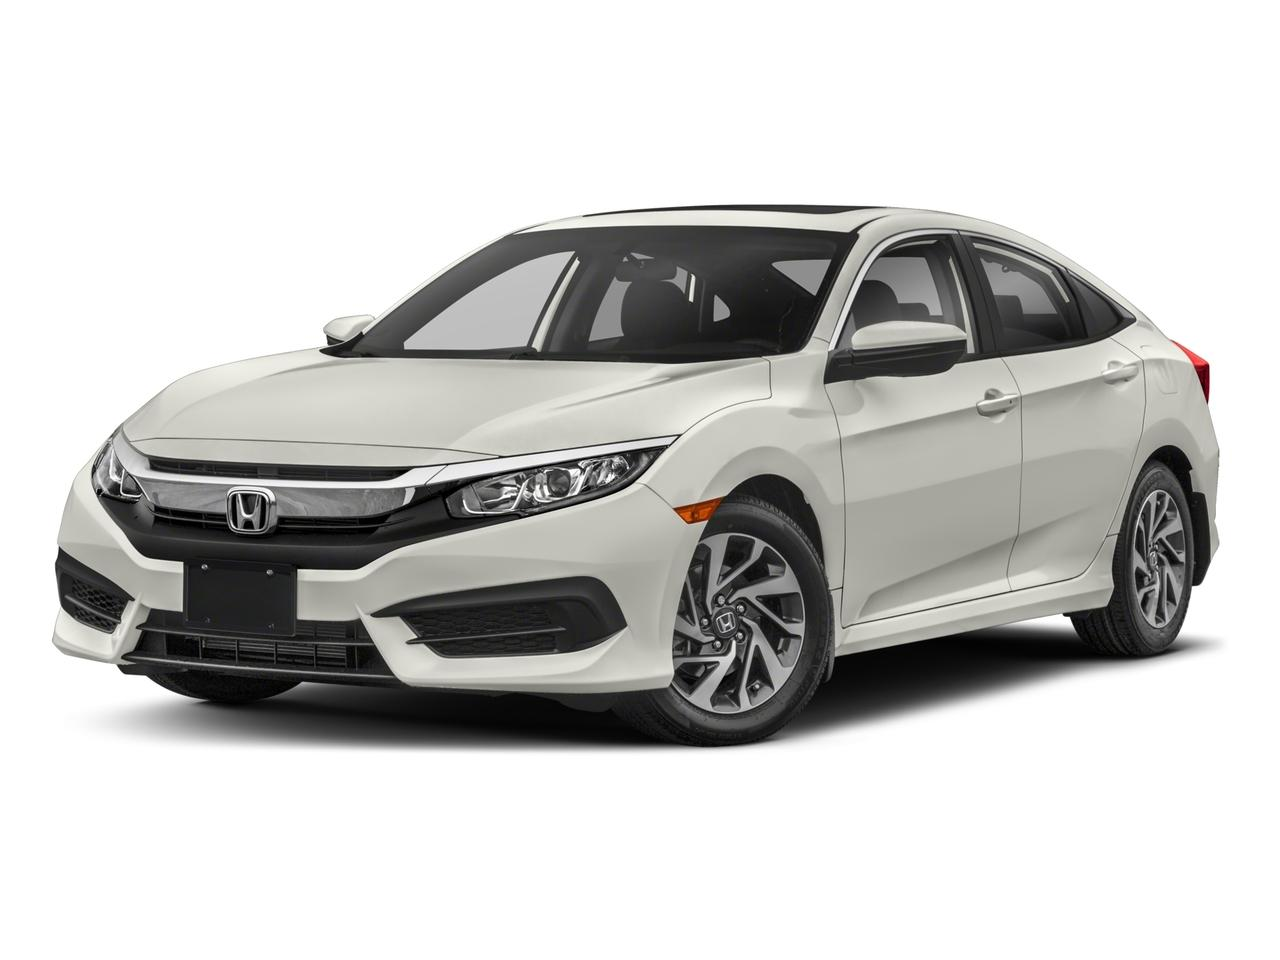 2018 Honda Civic Sedan Vehicle Photo in Houston, TX 77074